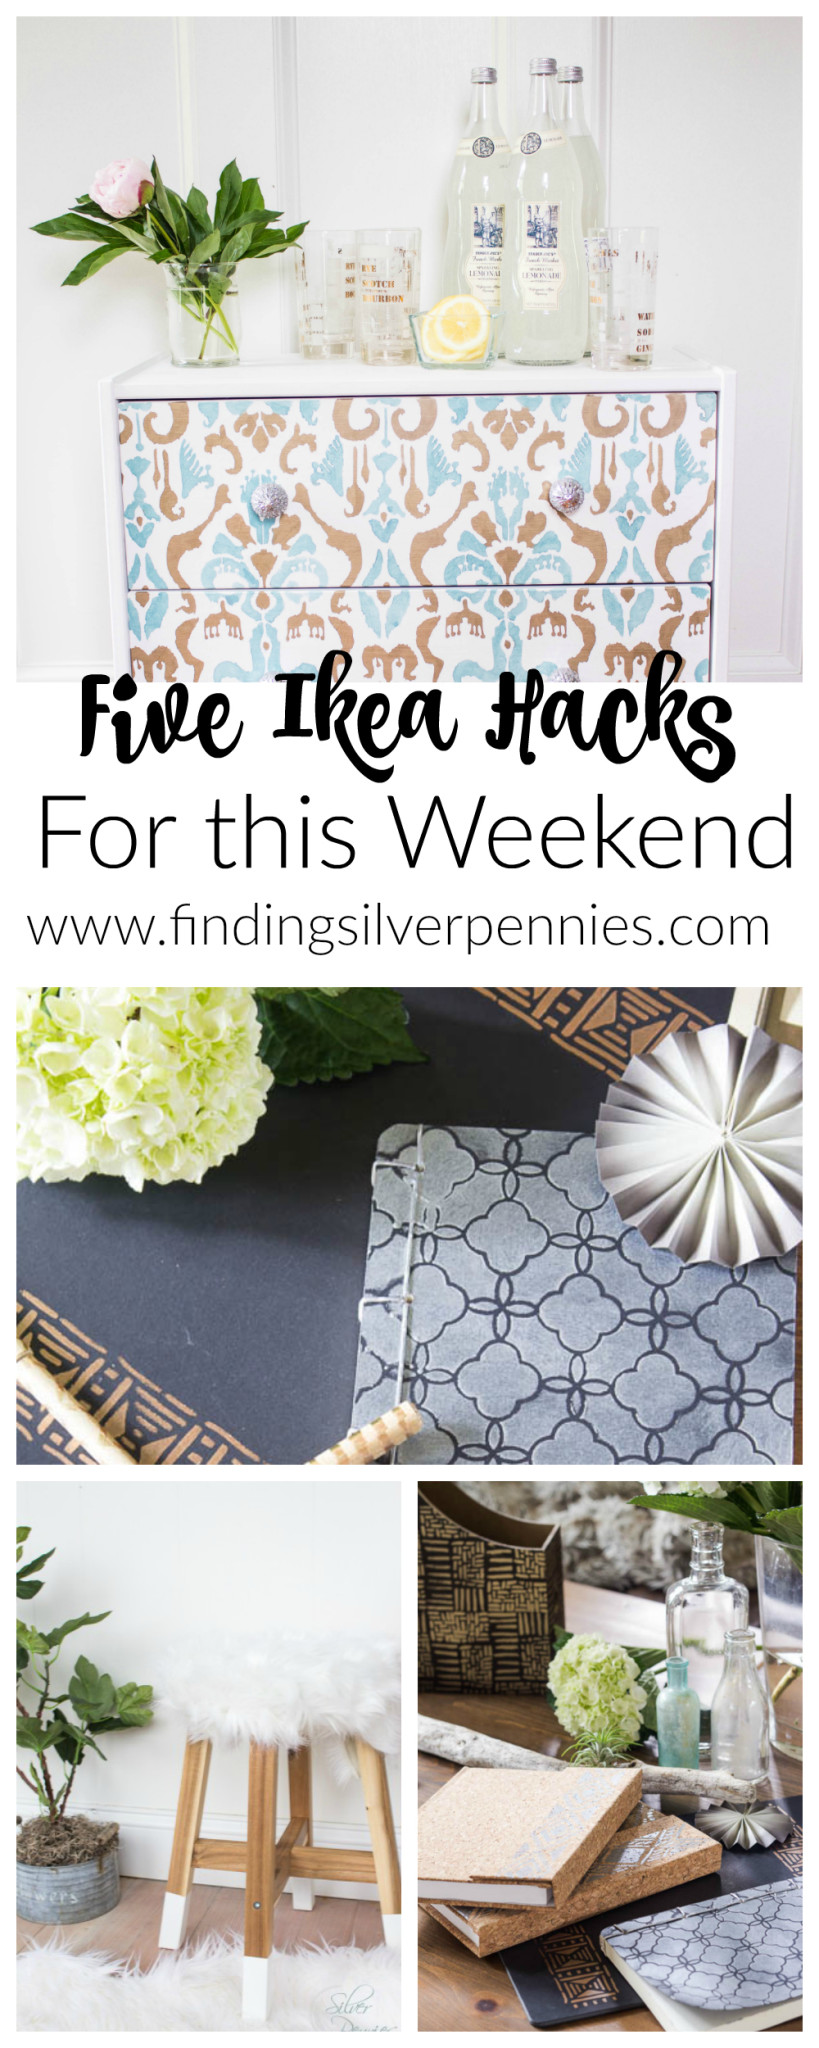 Five Ikea Hacks to Tackle This Weekend